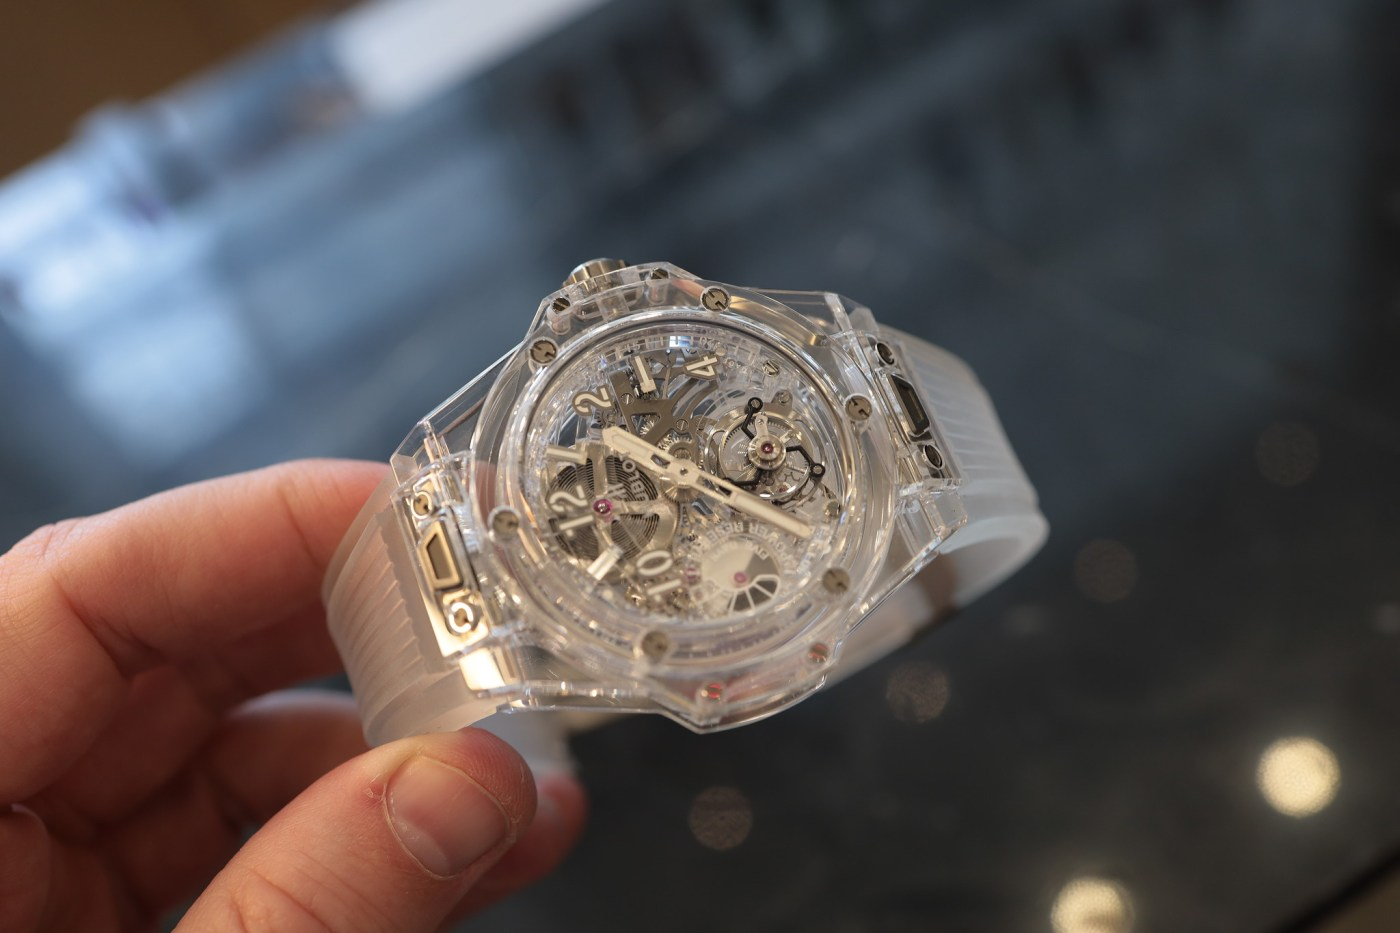 Hublot Big Bang Tourbillon 5 Days Sapphire, $148K